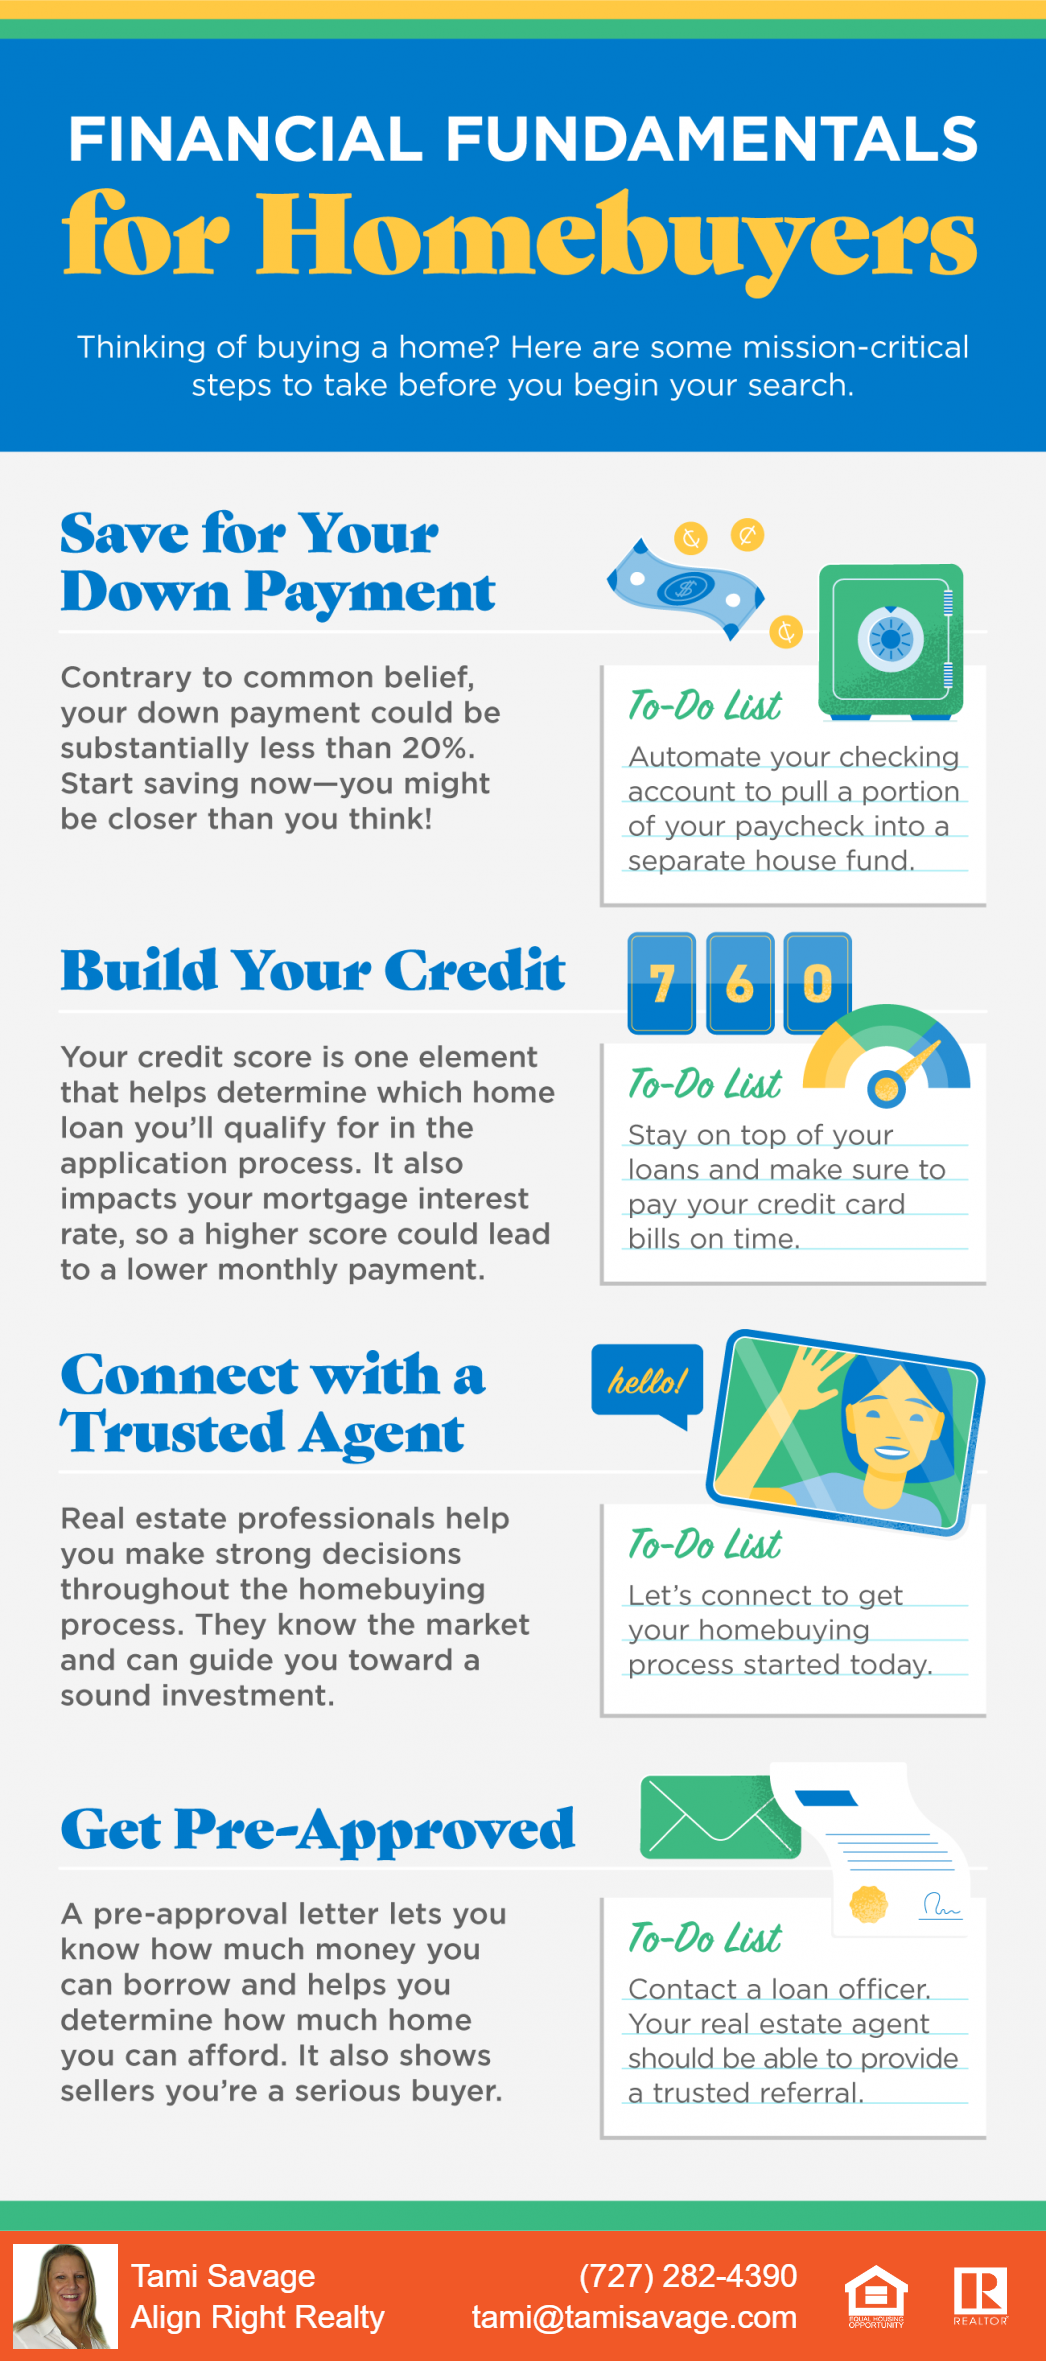 Financial Fundamentals for Homebuyers. Thinking of buying a home? Here are some mission-critical steps to take before you begin your search. SAVE FOR YOUR DOWN PAYMENT. Contrary to common belief, your down payment could be substantially less than 20%. Start Saving now - you might be closer than you think! To-do list item: Automate your checking account to pull a portion of your paycheck into a separate house fund. BUILD YOUR CREDIT. Your credit score is one element that helps determine which home loan you'll qualify for in the application process. It also impacts your mortgage interst rate, so a higher score could lead to a lower monthly payment. To-do list item: Stay on top of your loans and make sure to pay your credit card bills on time. CONNECT WITH A TRUSTED AGENT. Real estate professionals help you make strong decisions throughout the homebuying process. They know the market and can guide you toward a sound investment. To-do list item: Let's connect to get your homebuying process started today. GET PRE-APPROVED. A pre-approval letter lets you know how much money you can borrow and helps you determine how much home you can afford. It also shows sellers you're a serious buyer. To-do list item: Contact a loan officer. Your real estate agent should be able to provide a trusted referral.